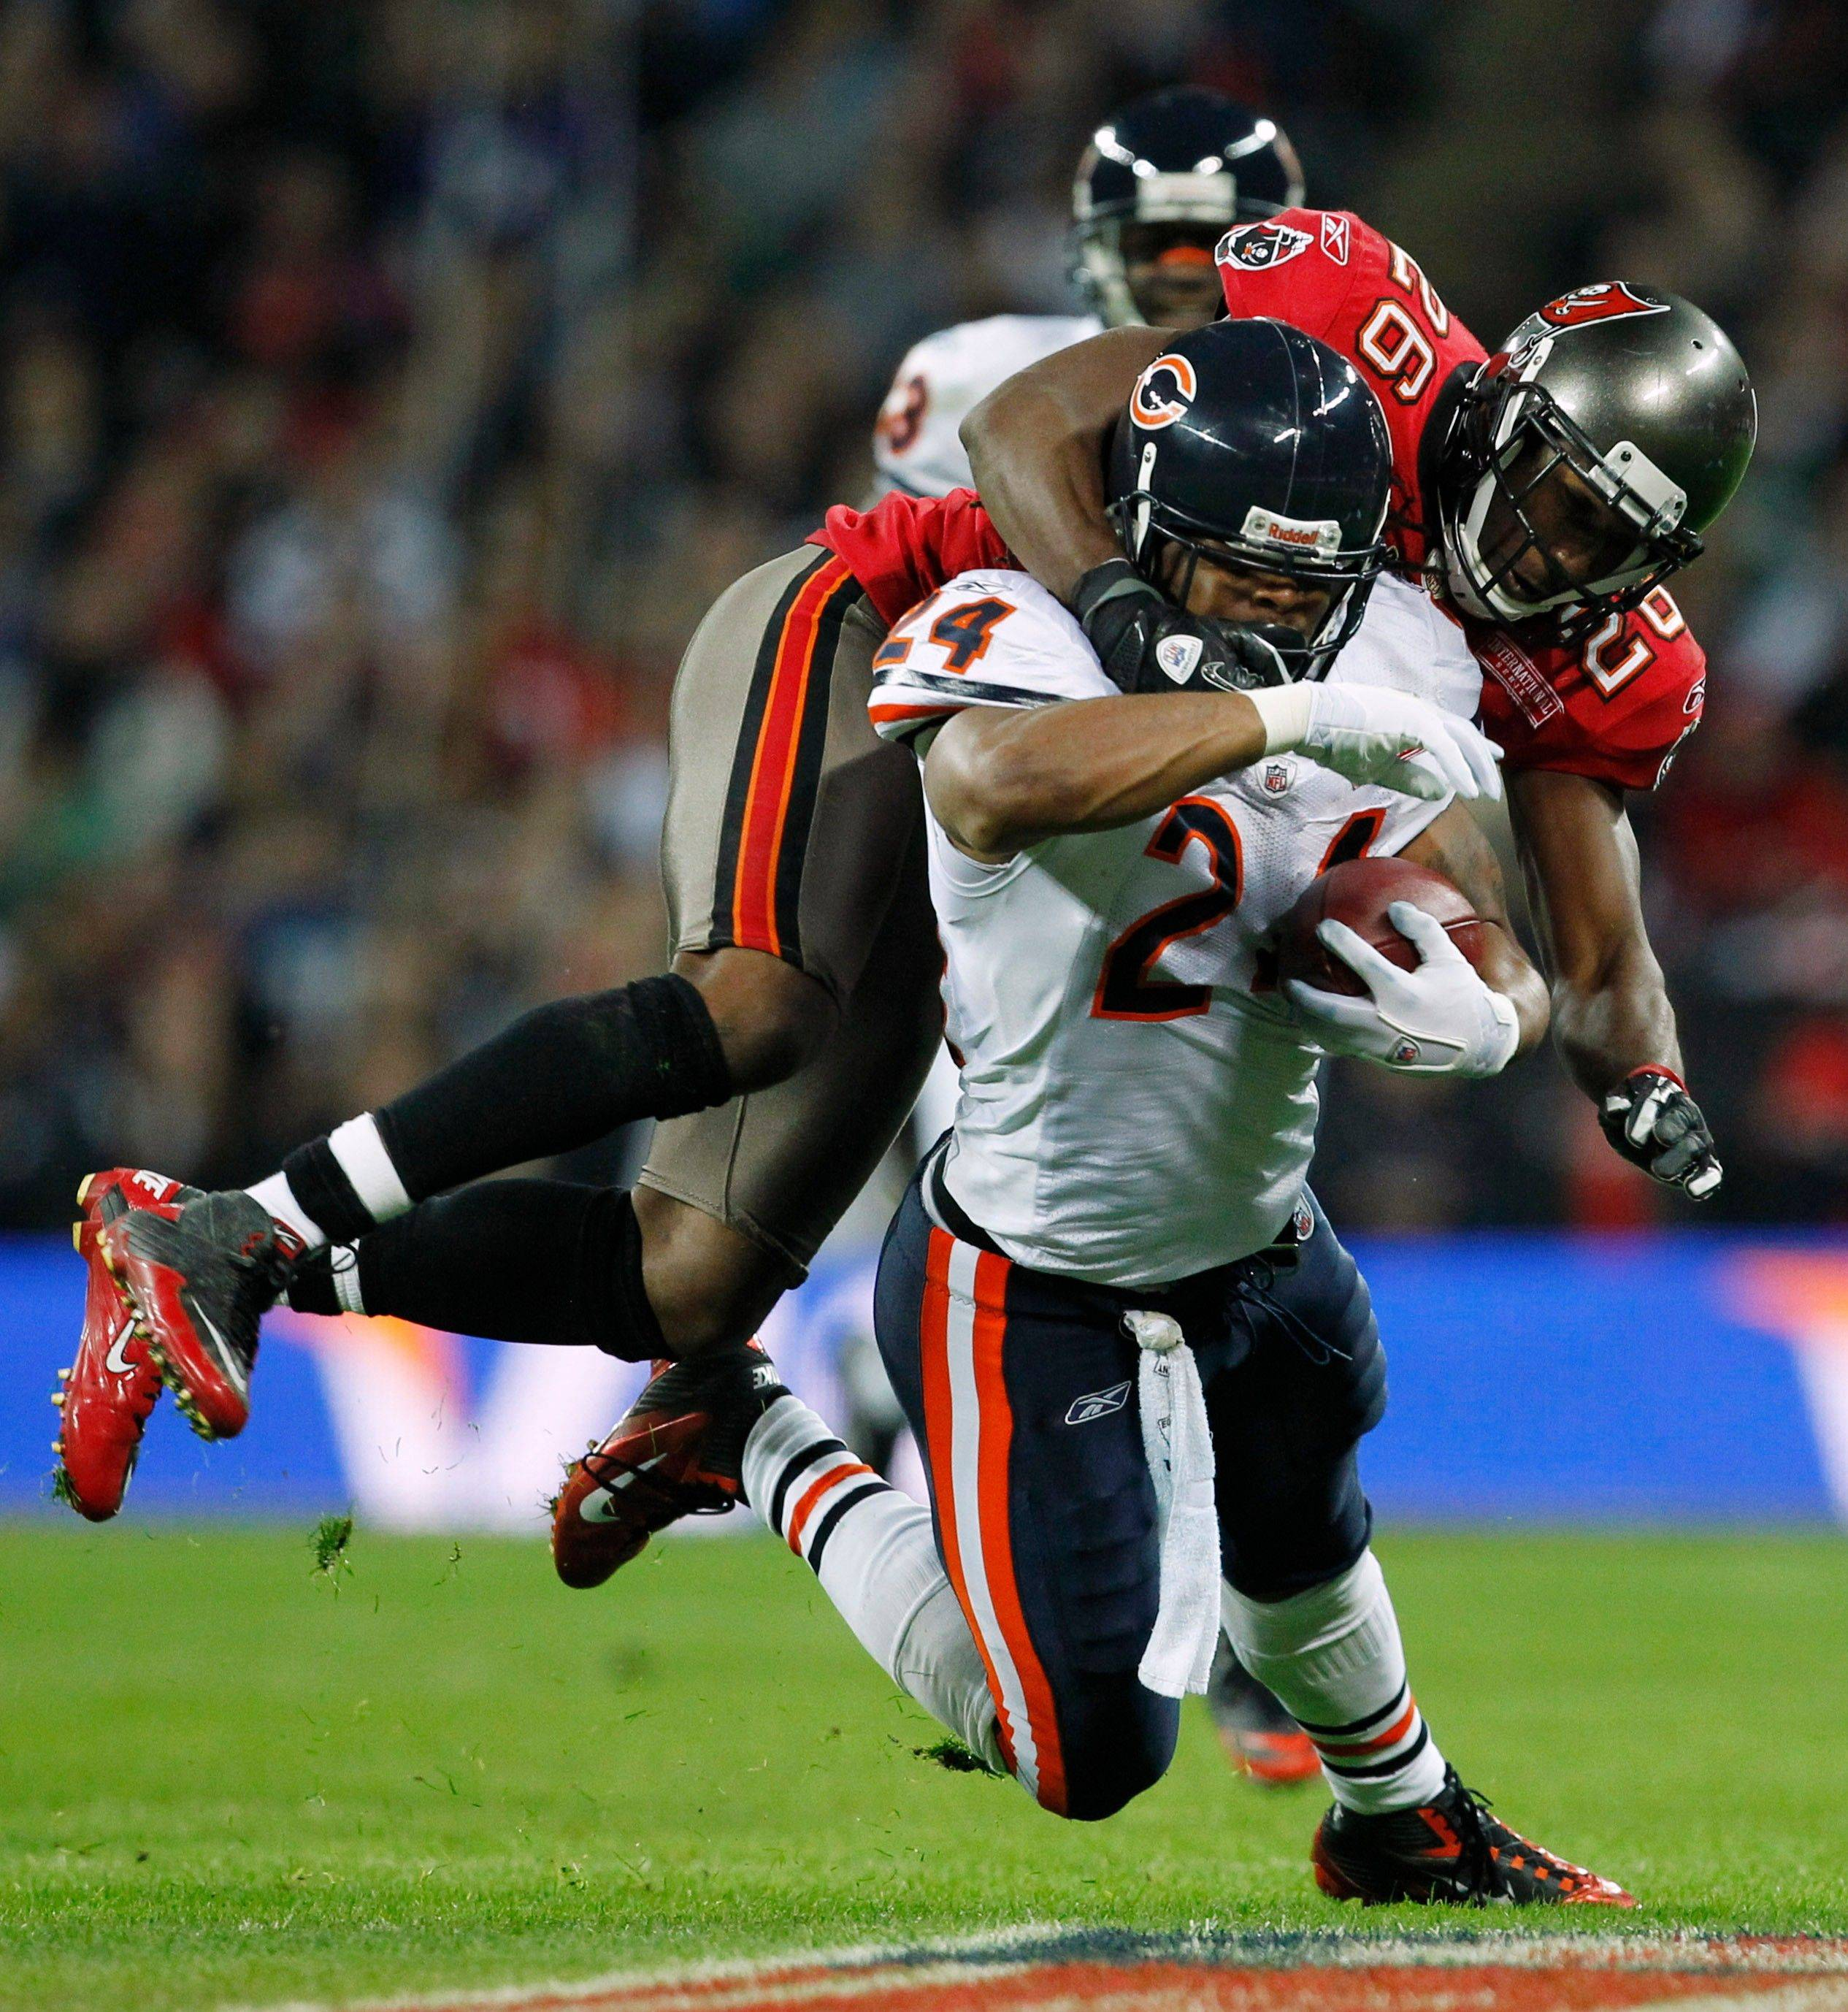 Chicago Bears running back Marion Barber is tackled by Tampa Bay Buccaneers safety Sean Jones during the first half.